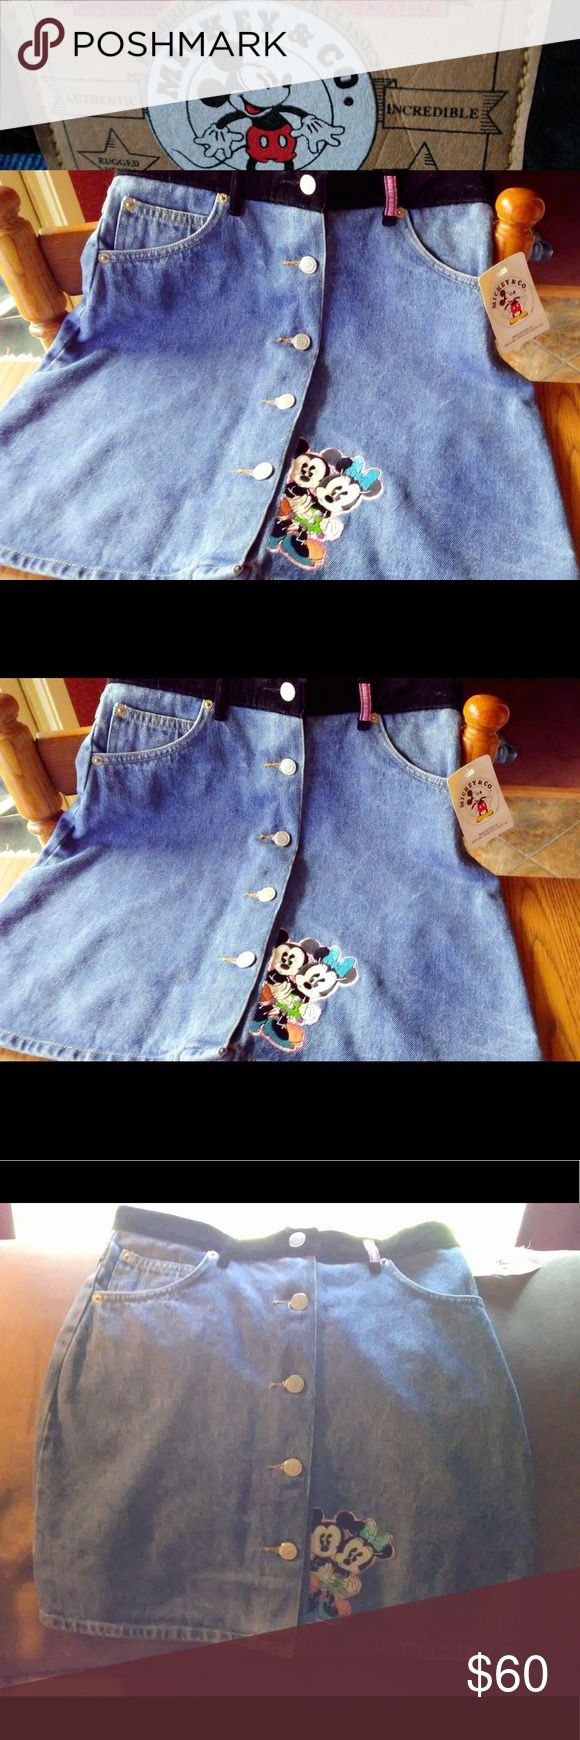 """Mickey Mouse button up Denim 90s Jean skirt 💕 Mickey & Minnie Denim with Velvet black band super cute button up jean skirt vintage from the 90s new with tags 💕💕💕😍😭tag says 16, measures 28"""" so could fit a 25-28"""" waist ✨ high waisted ✨ so amazing! Buy this skirt before it's gone all you Disney babes ❤️⭐️ Mickey & Minnie patch Embroidered Jean Denim skirt ✨ unif kawaii vintage 90s doll skill nastygal Brandy Melville cartoons Minnie Mouse Mickey Mouse patch 2000 Velvet button up skirt…"""